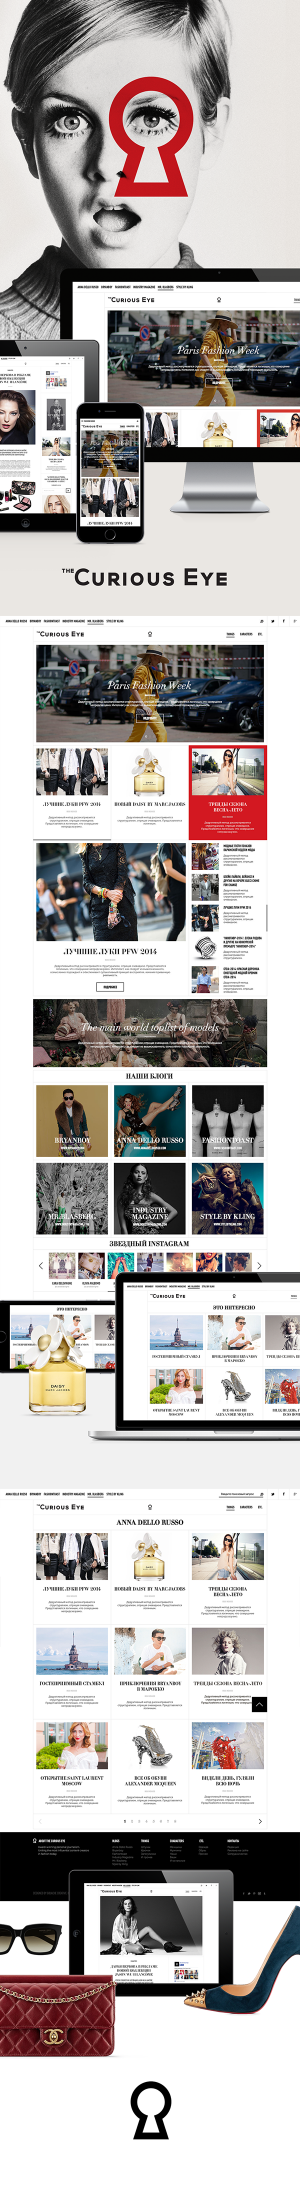 The Curious Eye – Fashion Blog Platform Website by Serge Vasil